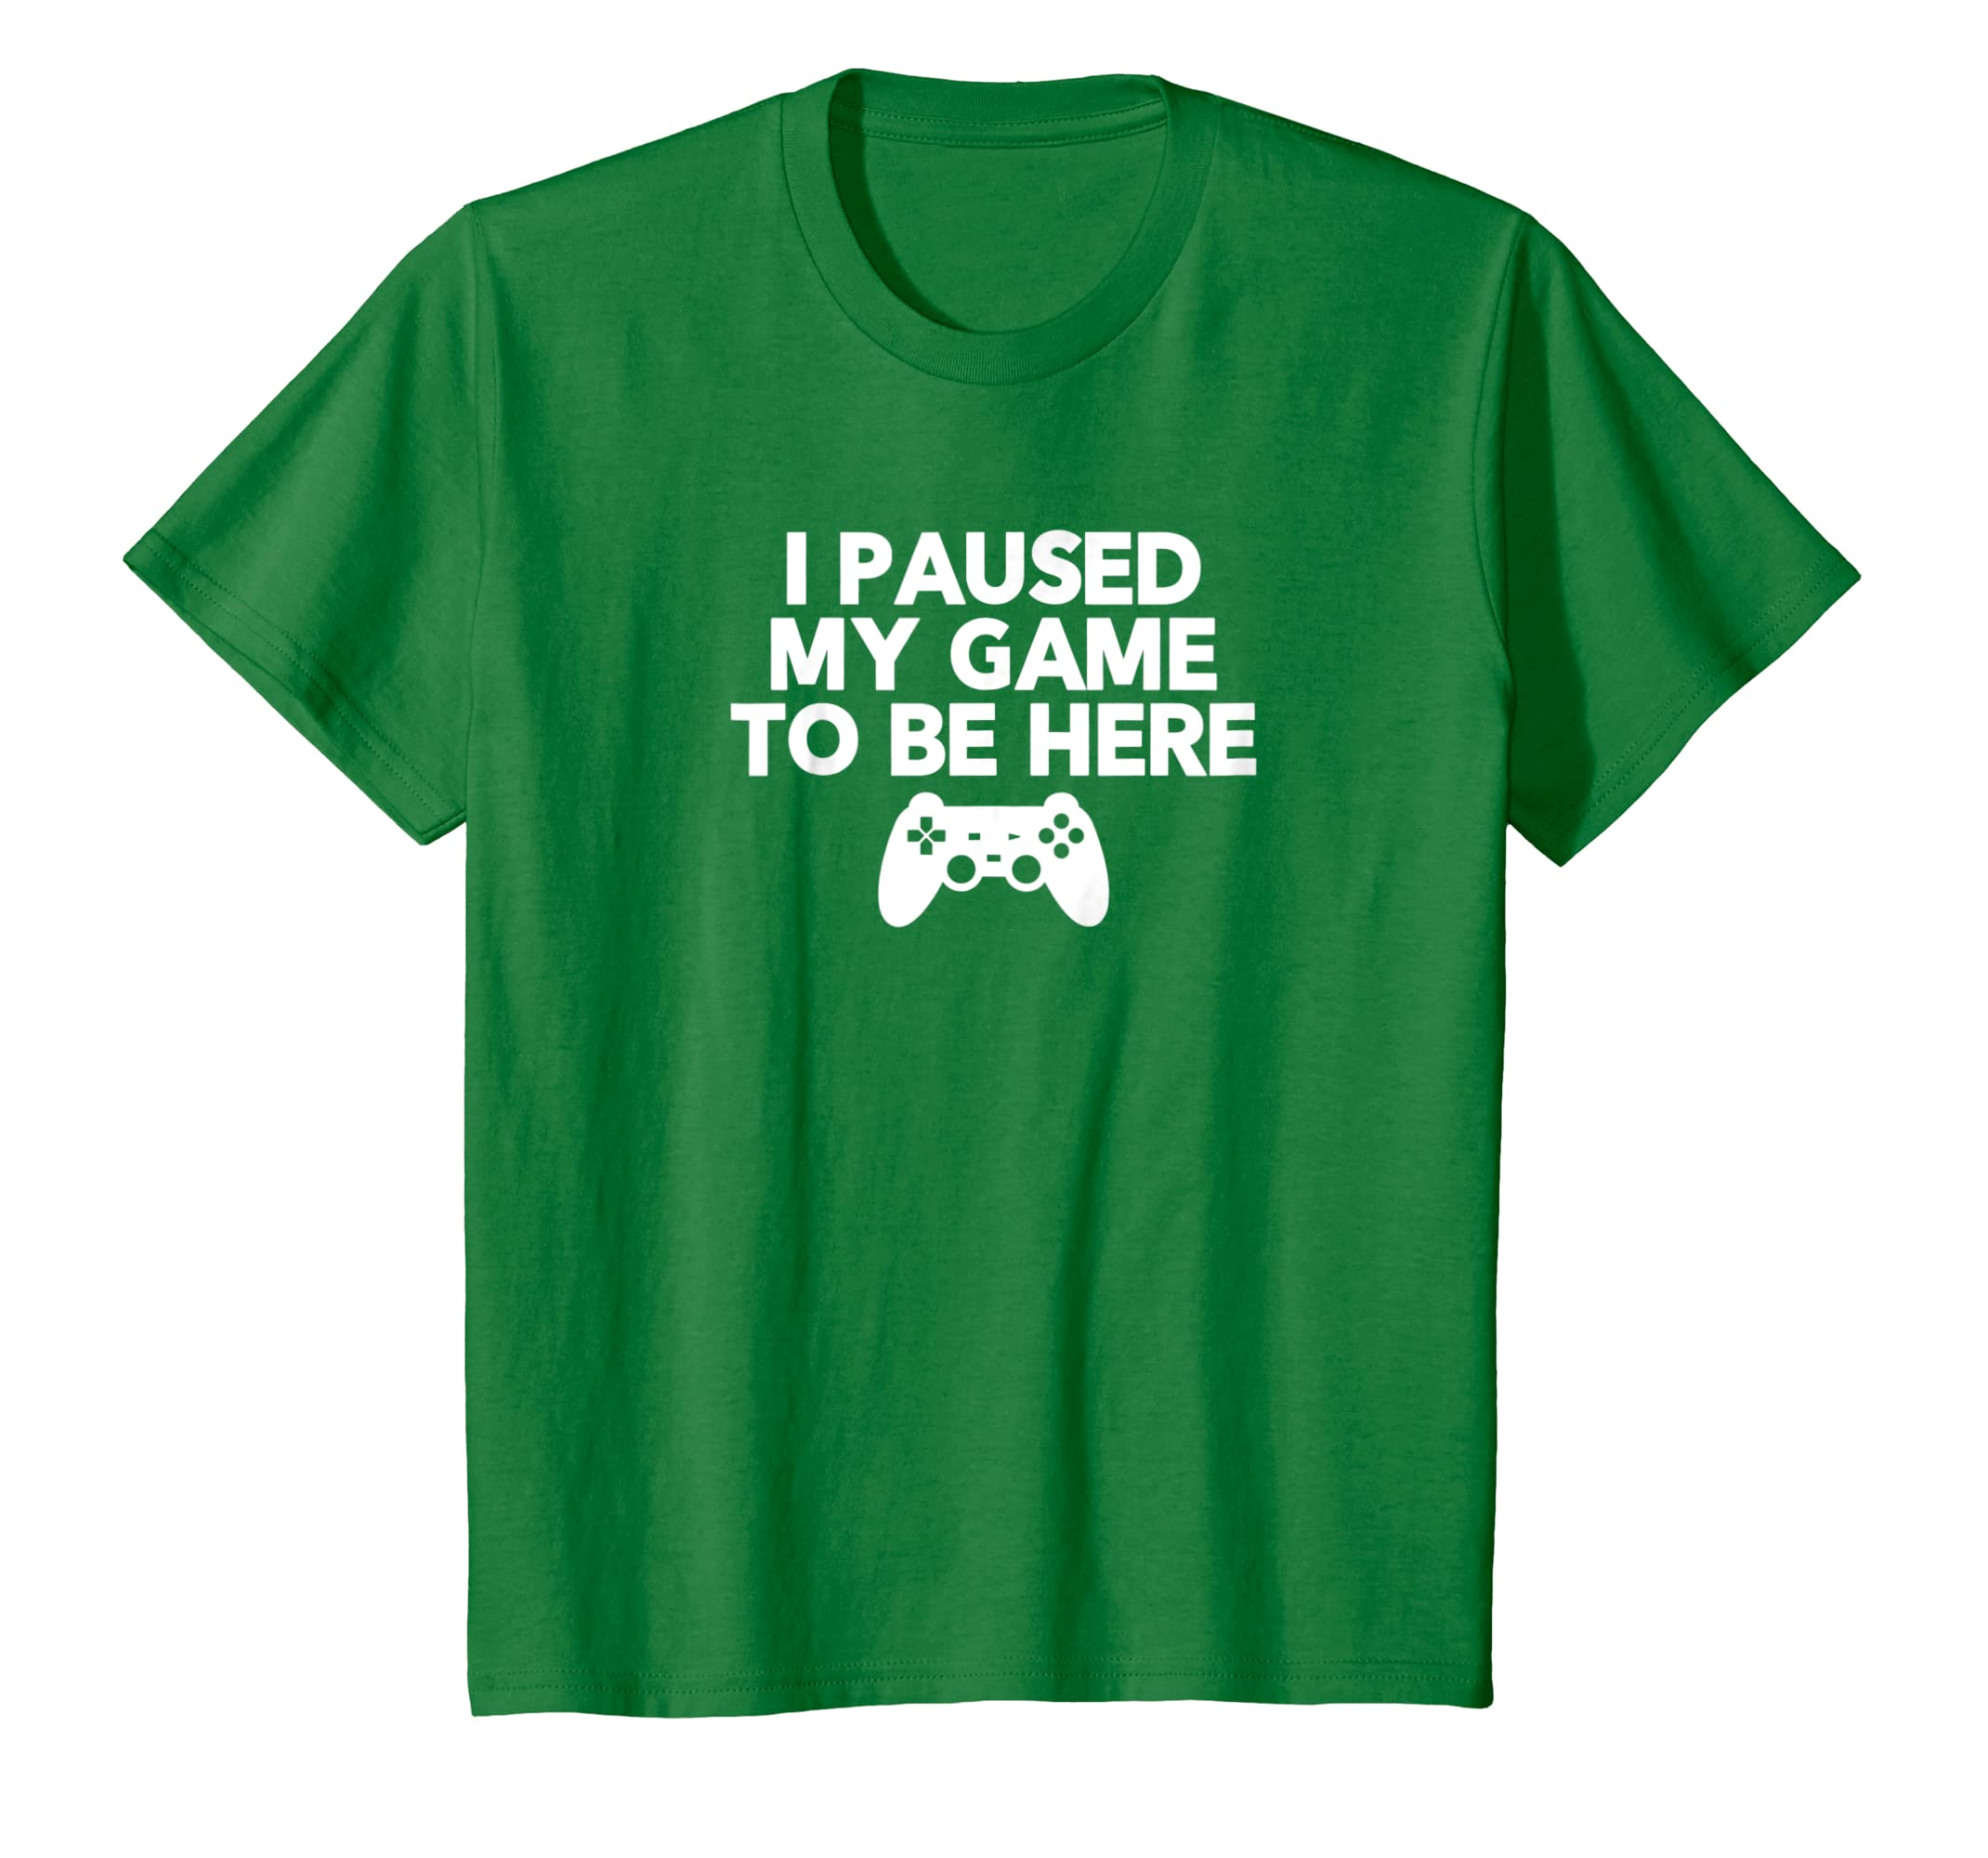 I Paused My Game to be Here T Shirt Funny Video Game Shirts-Teechatpro